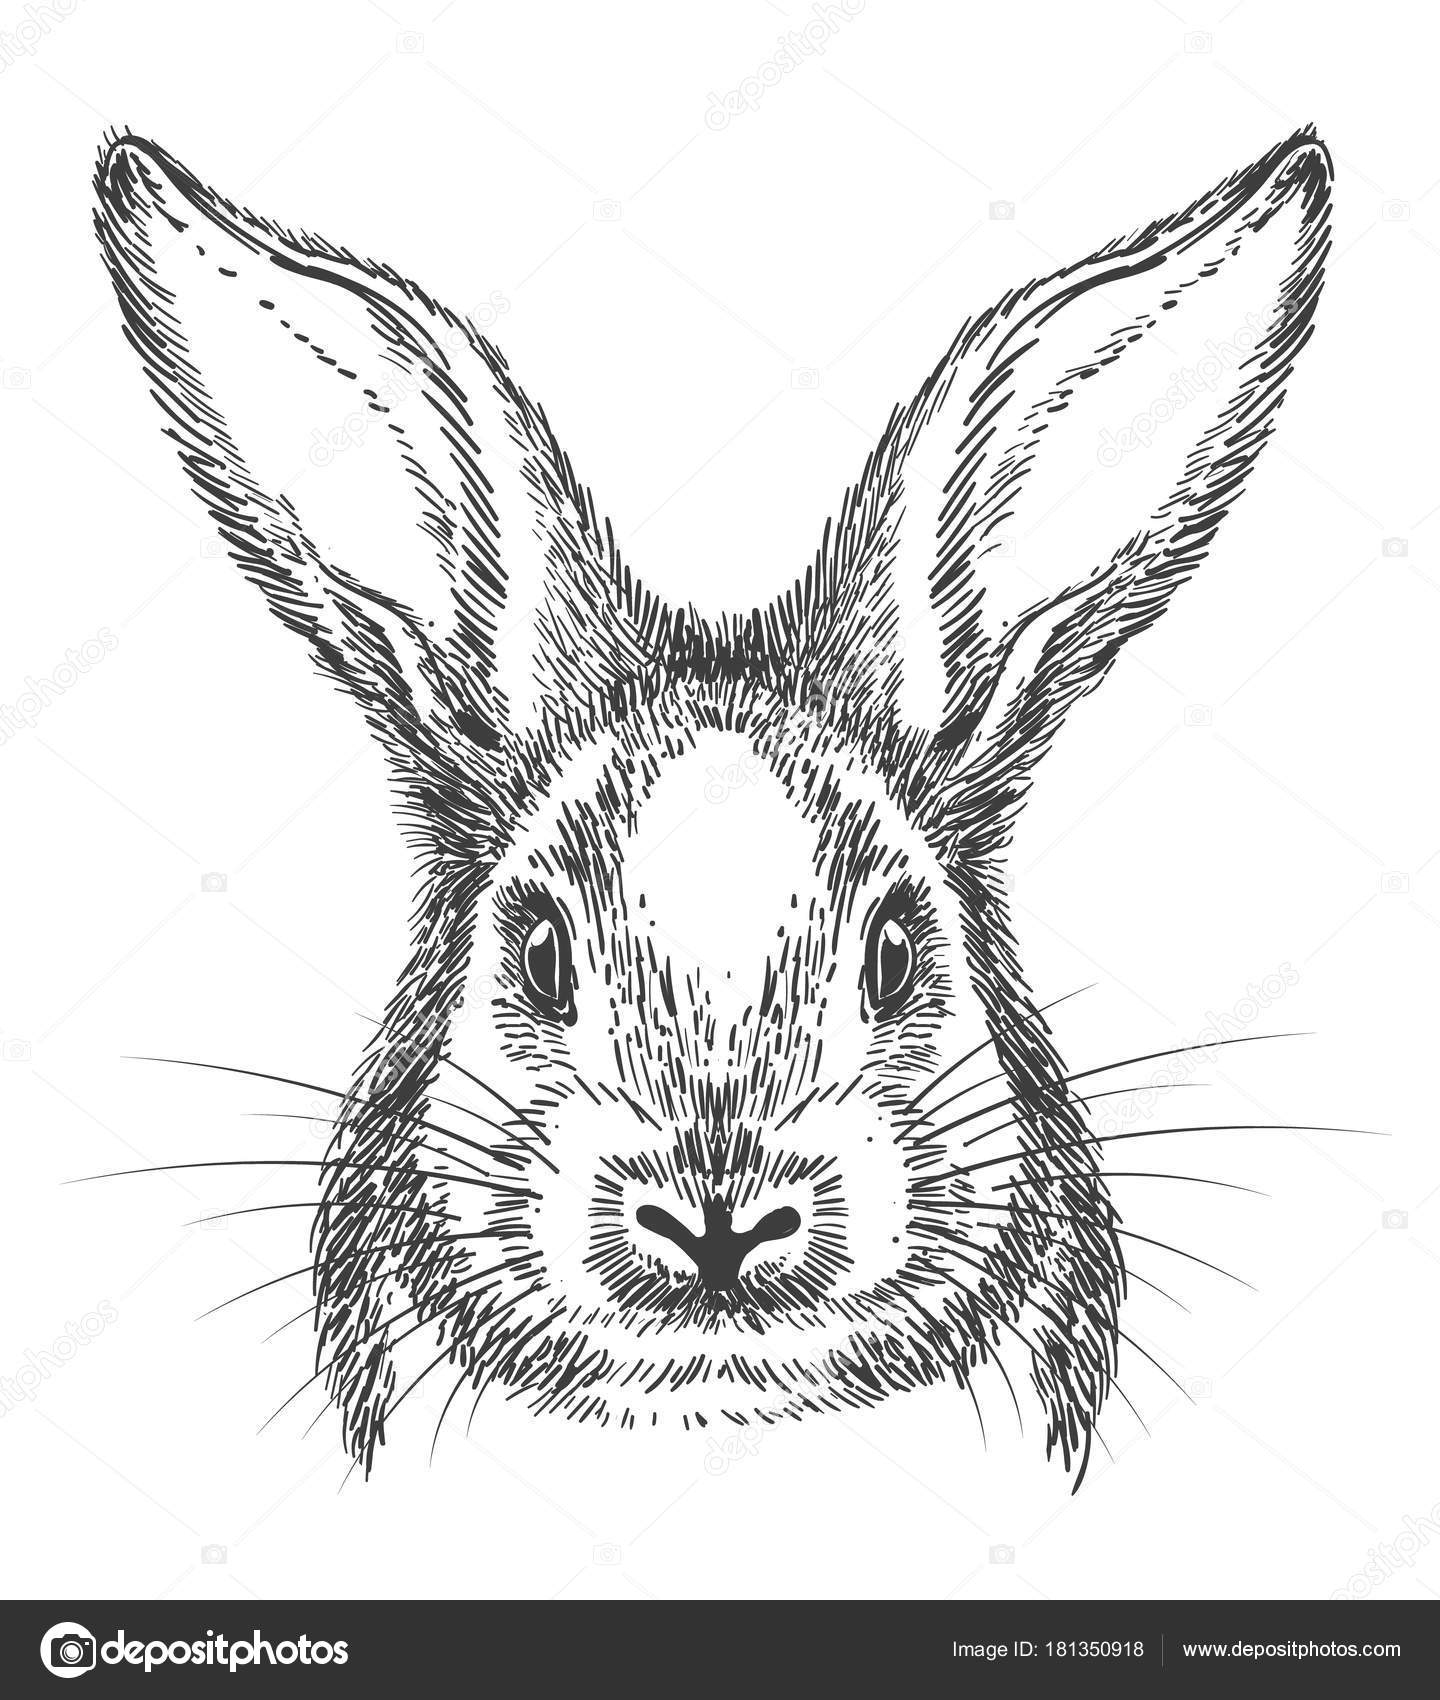 Line Drawing Of Rabbit Face : Vintage hand drawn bunny face sketch — stock vector